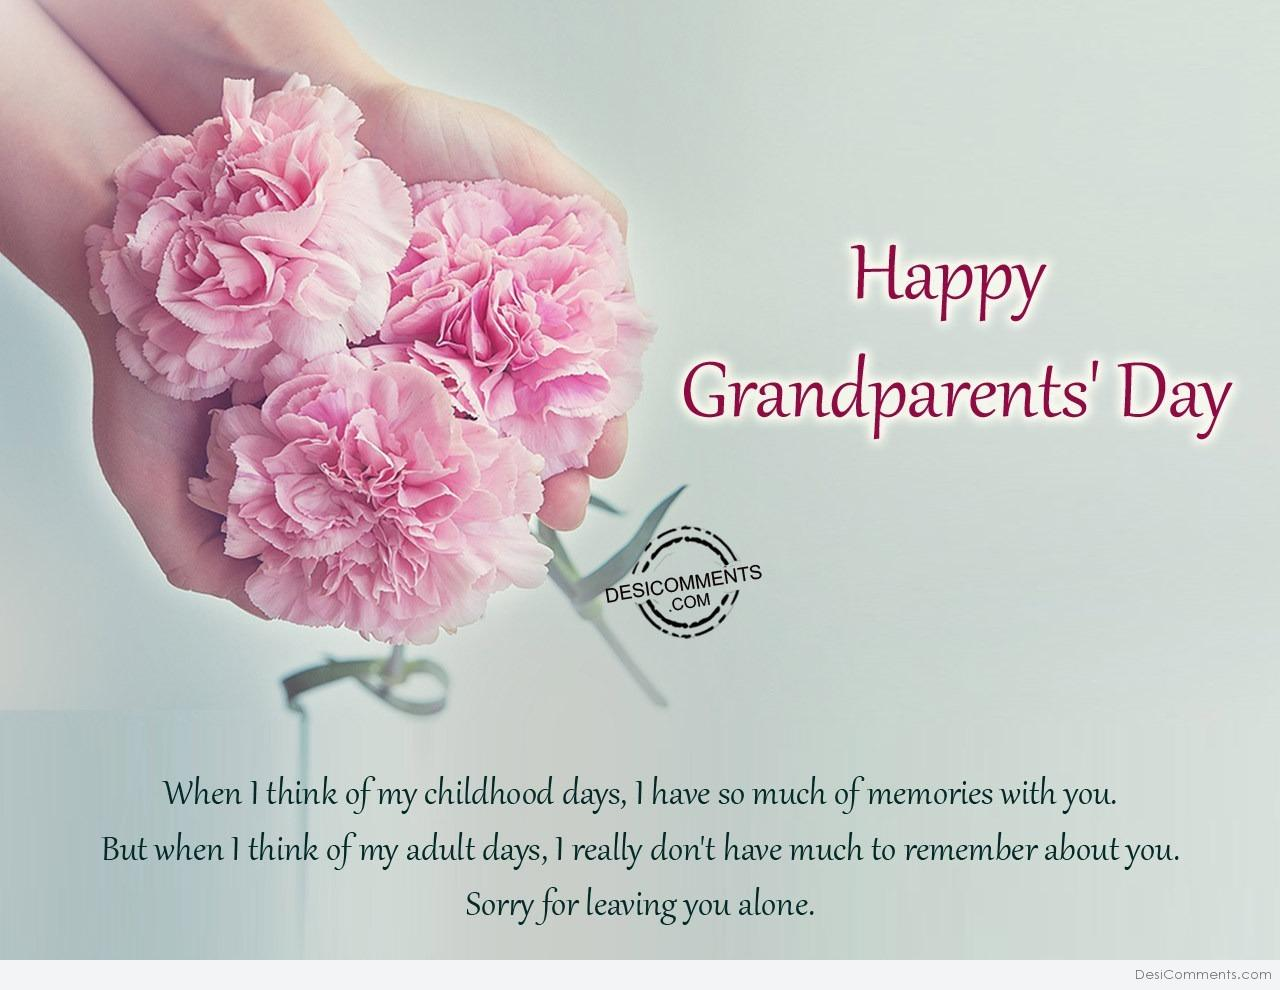 grandparents day quotes - HD1280×990